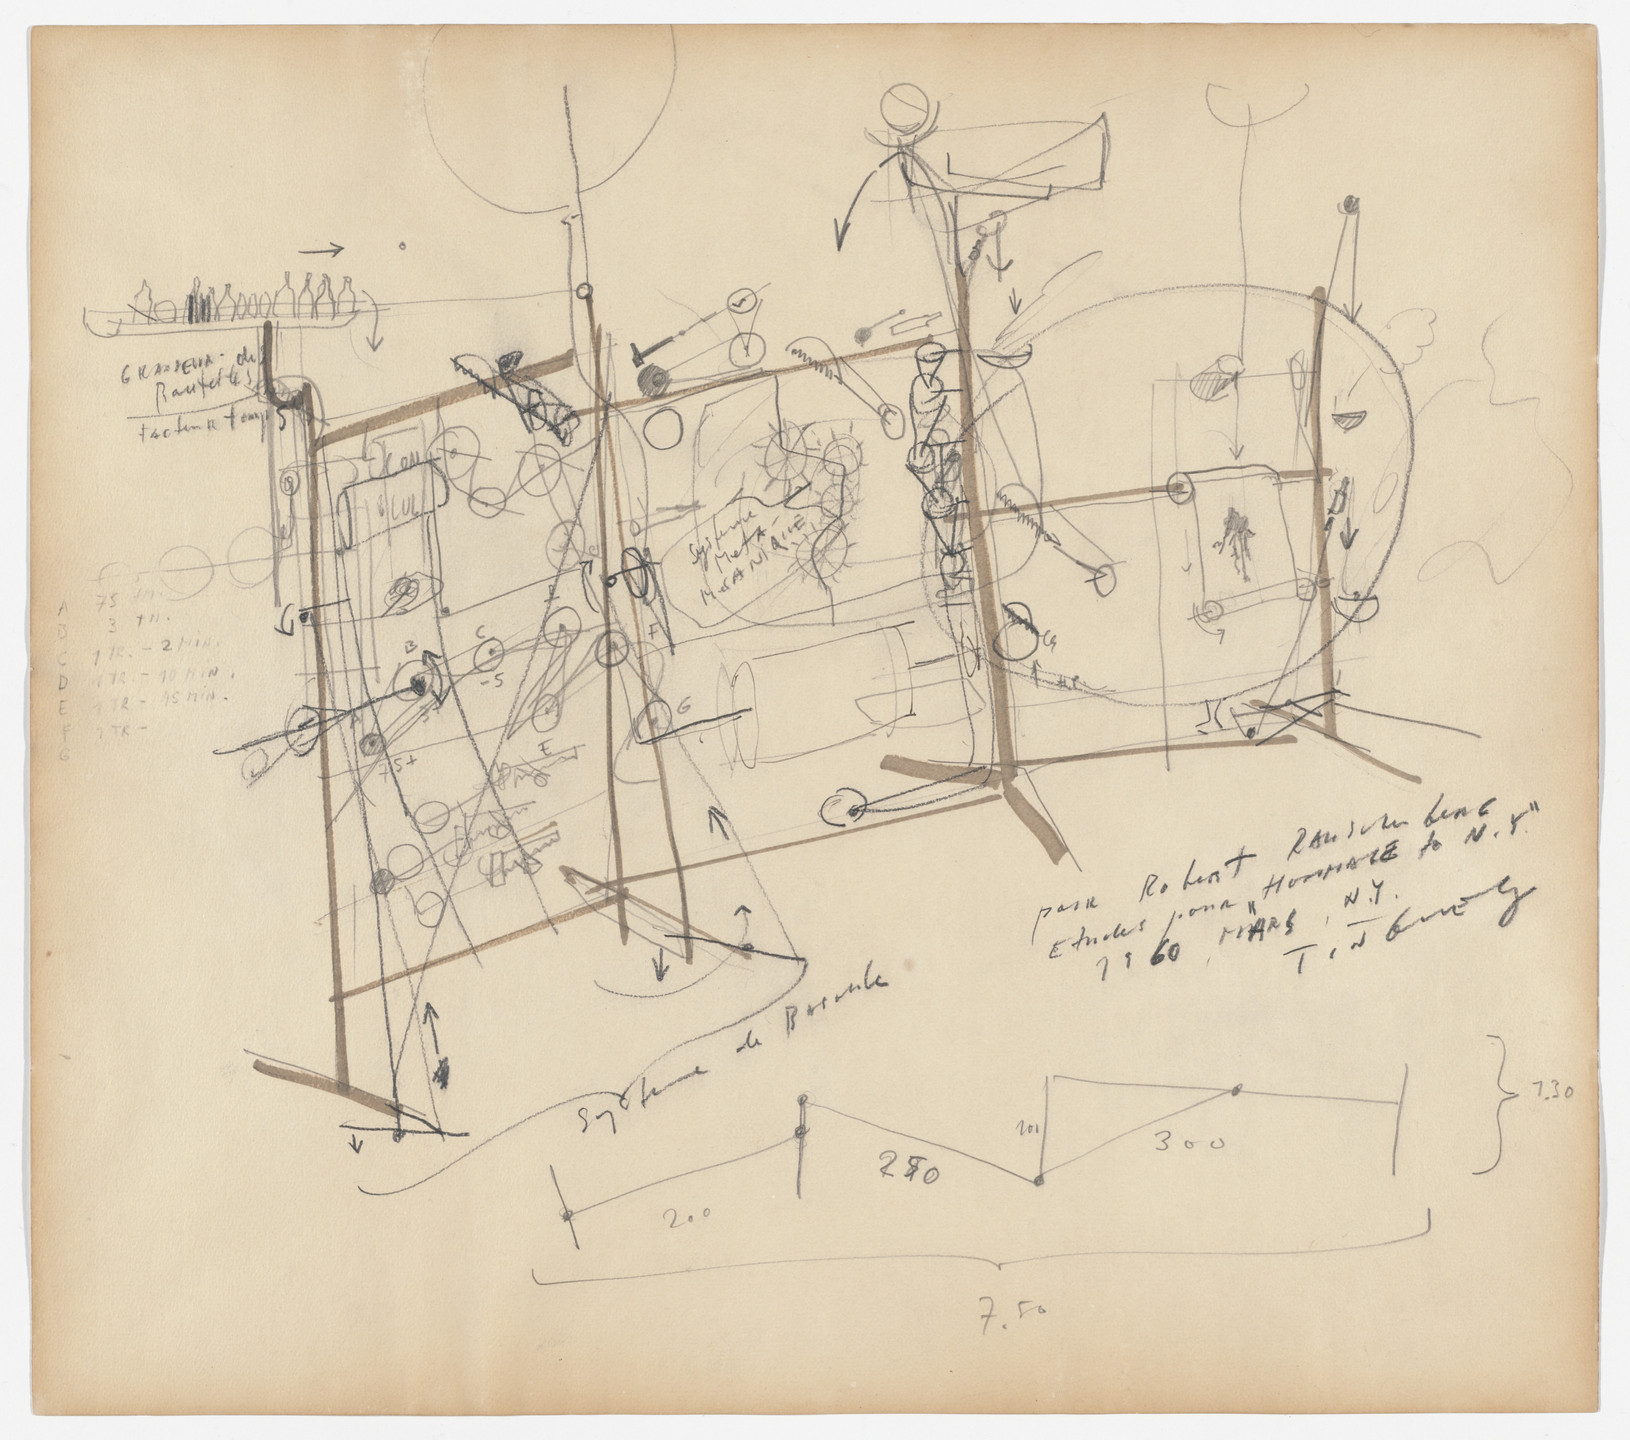 Jean Tinguely. Homage to New York drawing. 1960